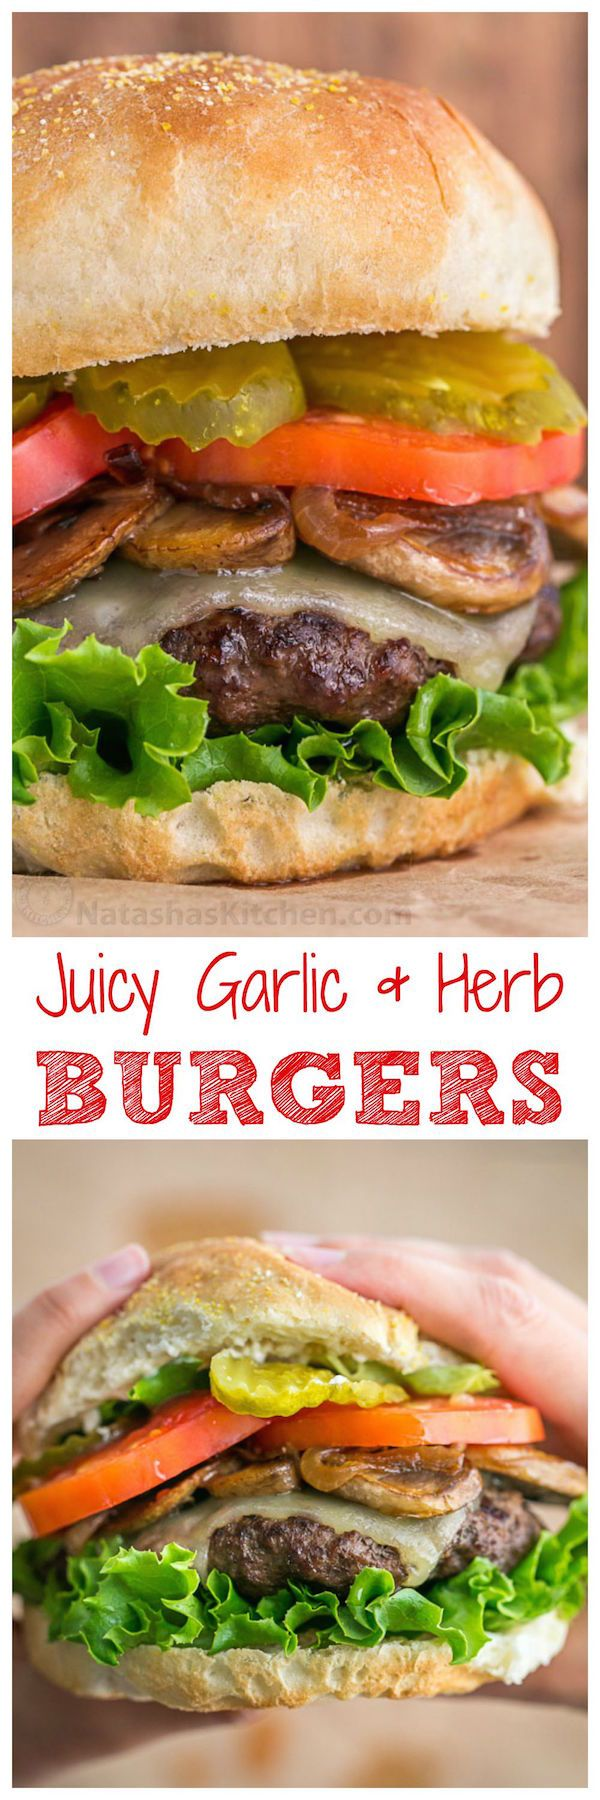 These burgers are fresh, juicy, fluffy and delicious, and feel lighter on the gut than frozen patties. So easy and they totally taste like a gourmet burger! Love this juicy burger recipe | natashaskitchen.com